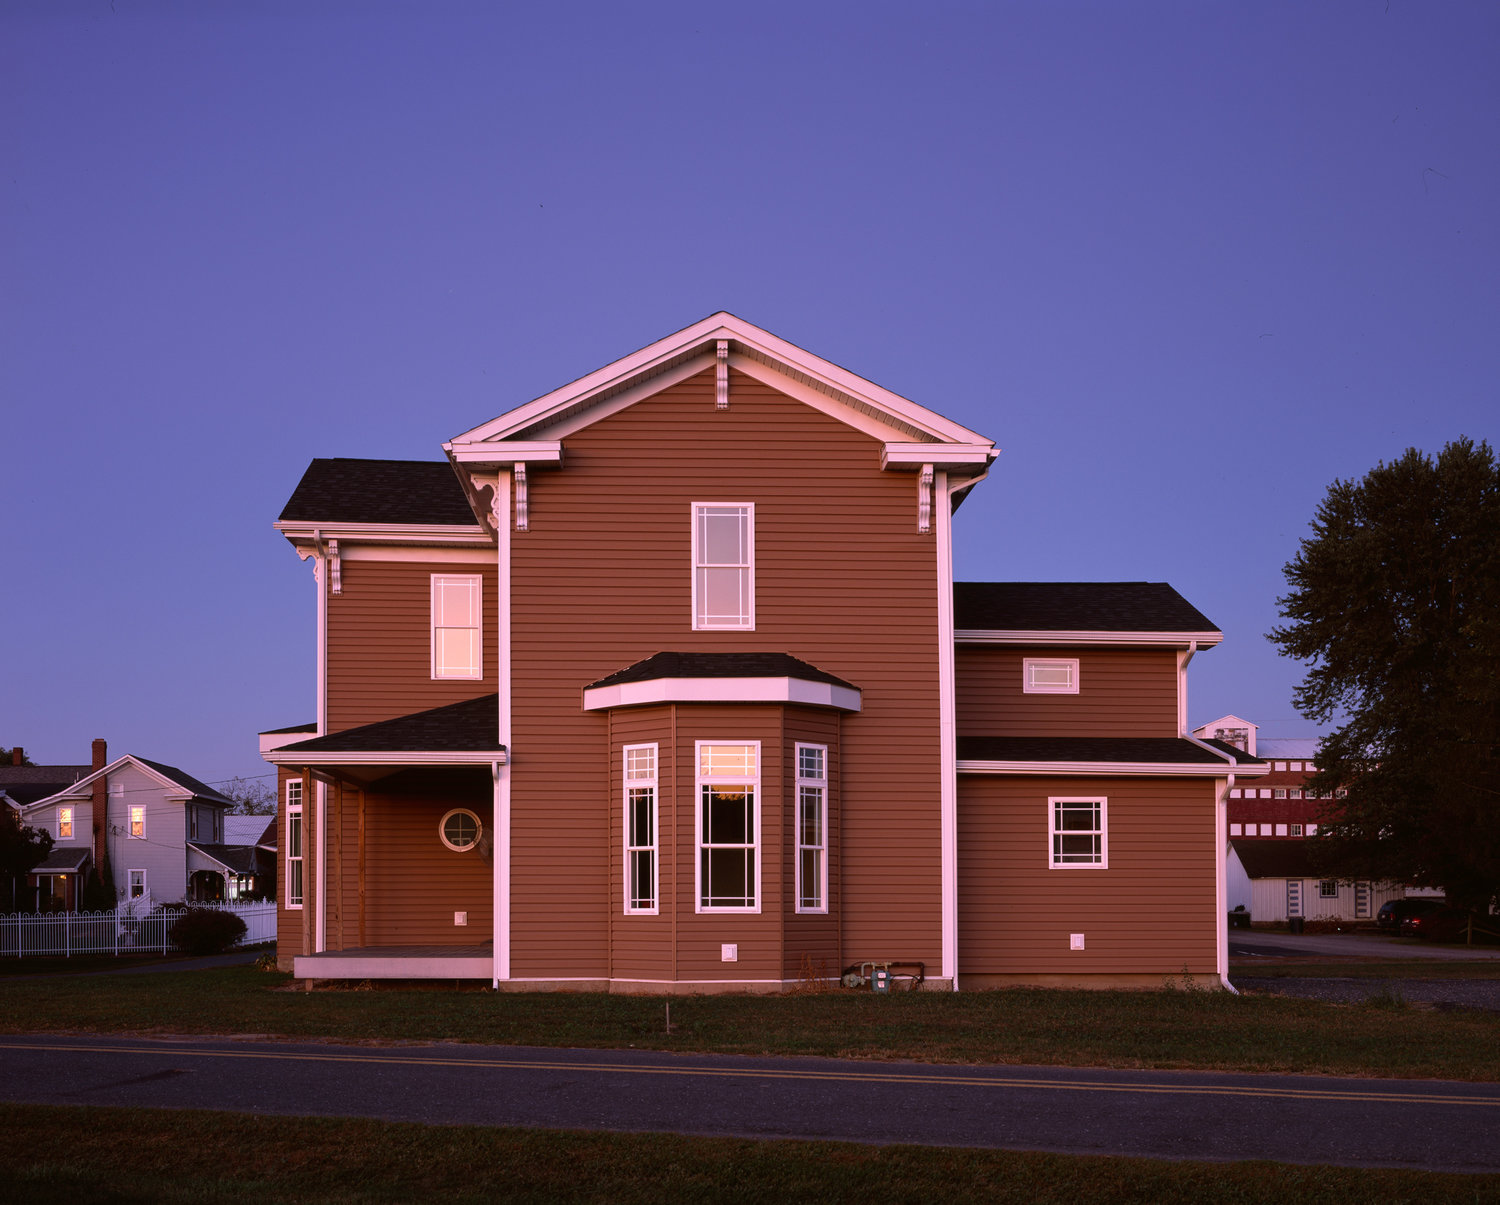 Computer Generated Physically Built House, Pennsylvania, 2015